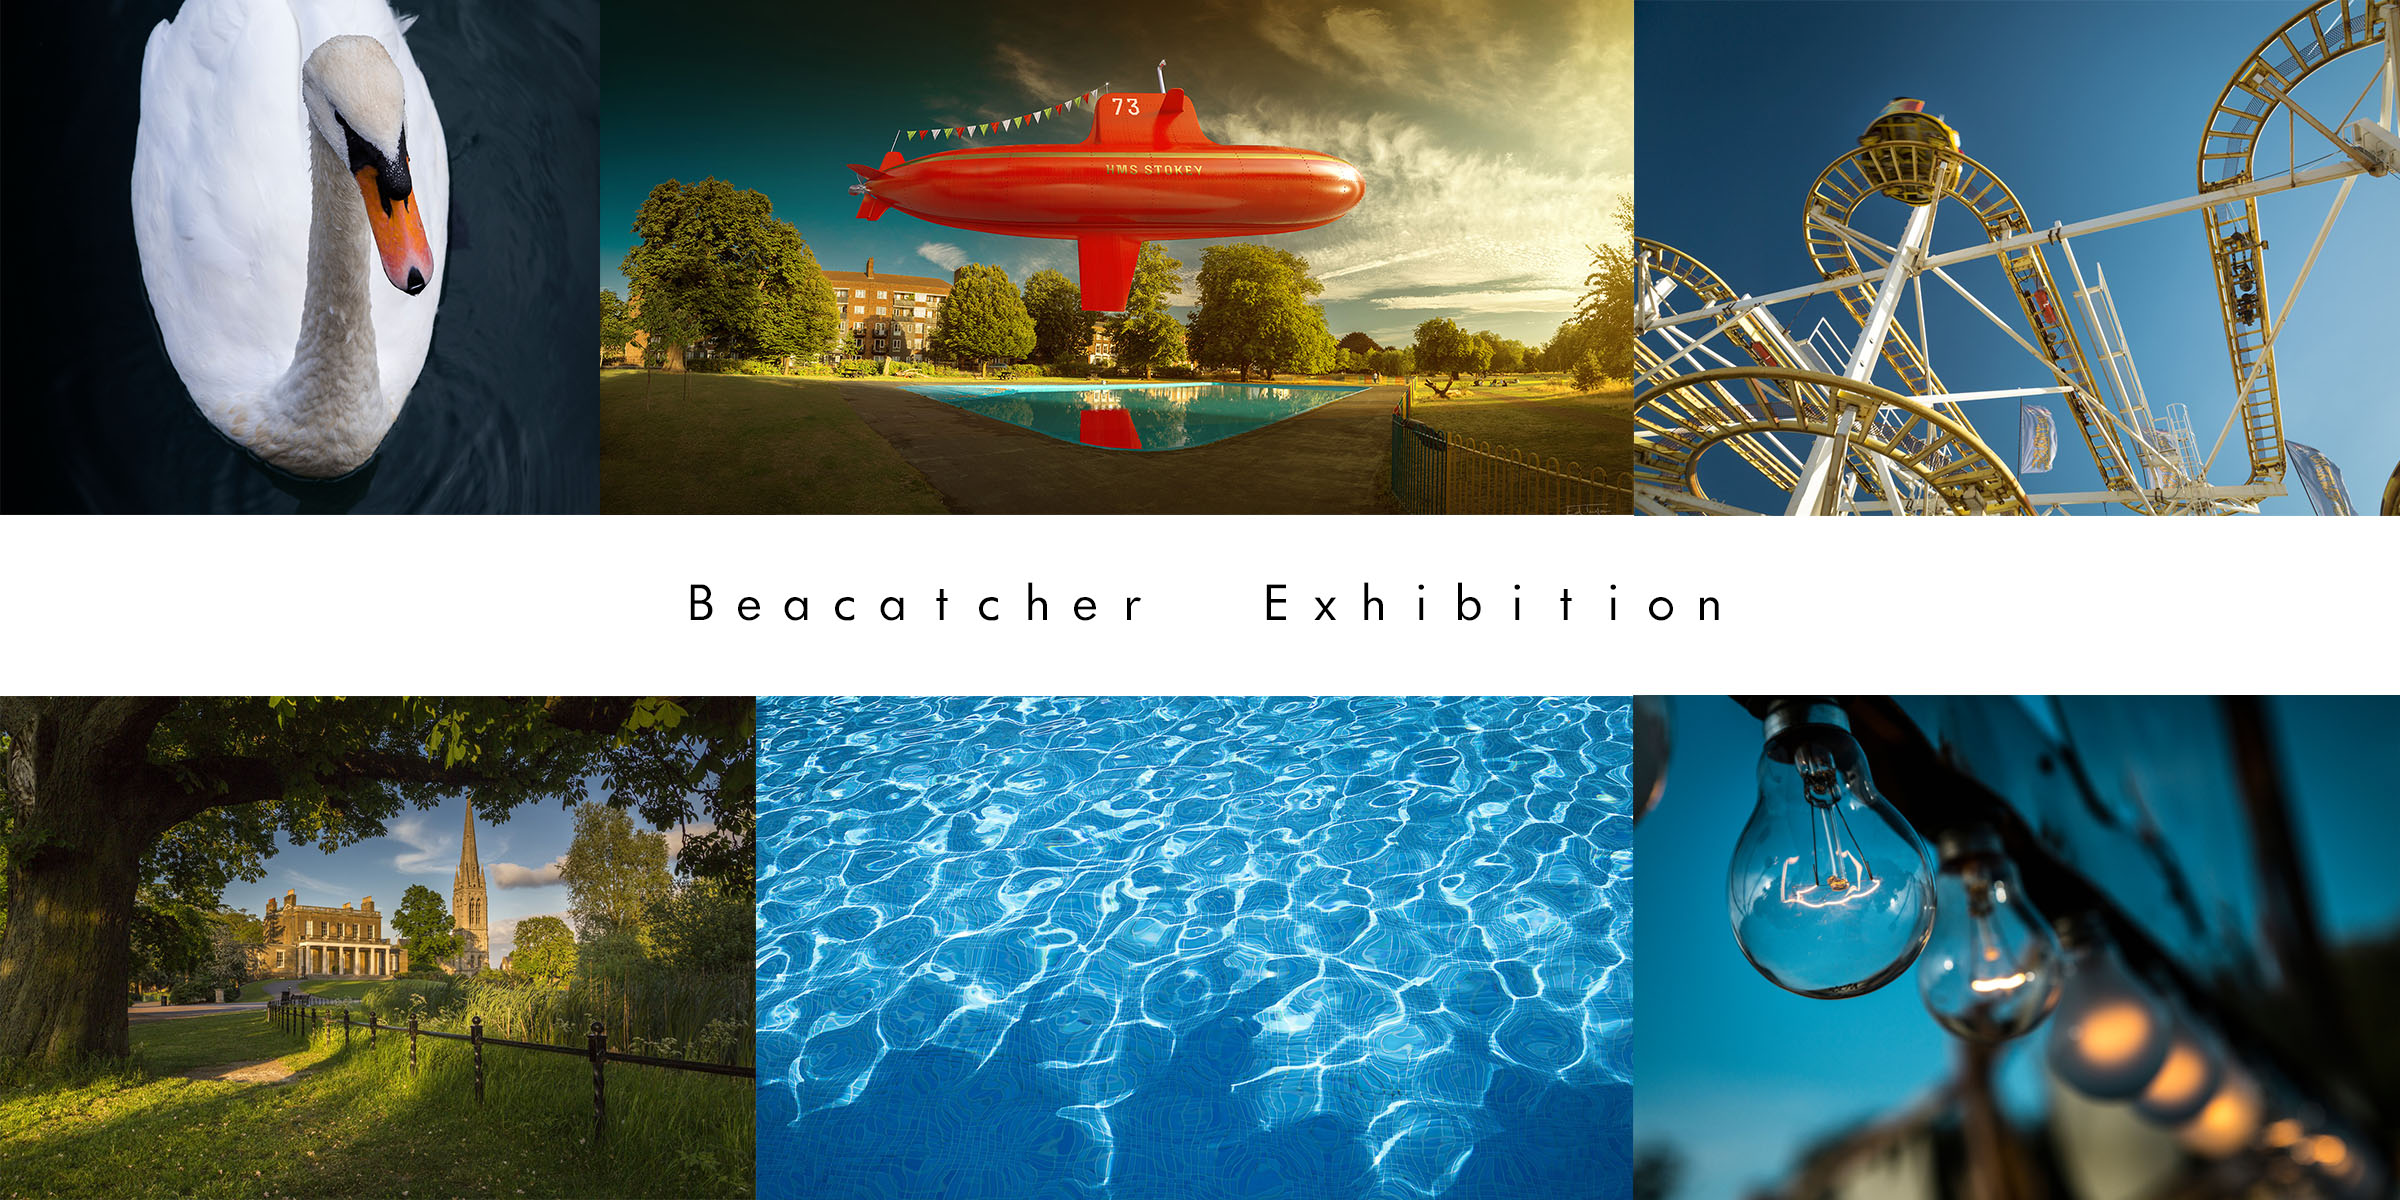 BEAUCATCHER EXHIBITION